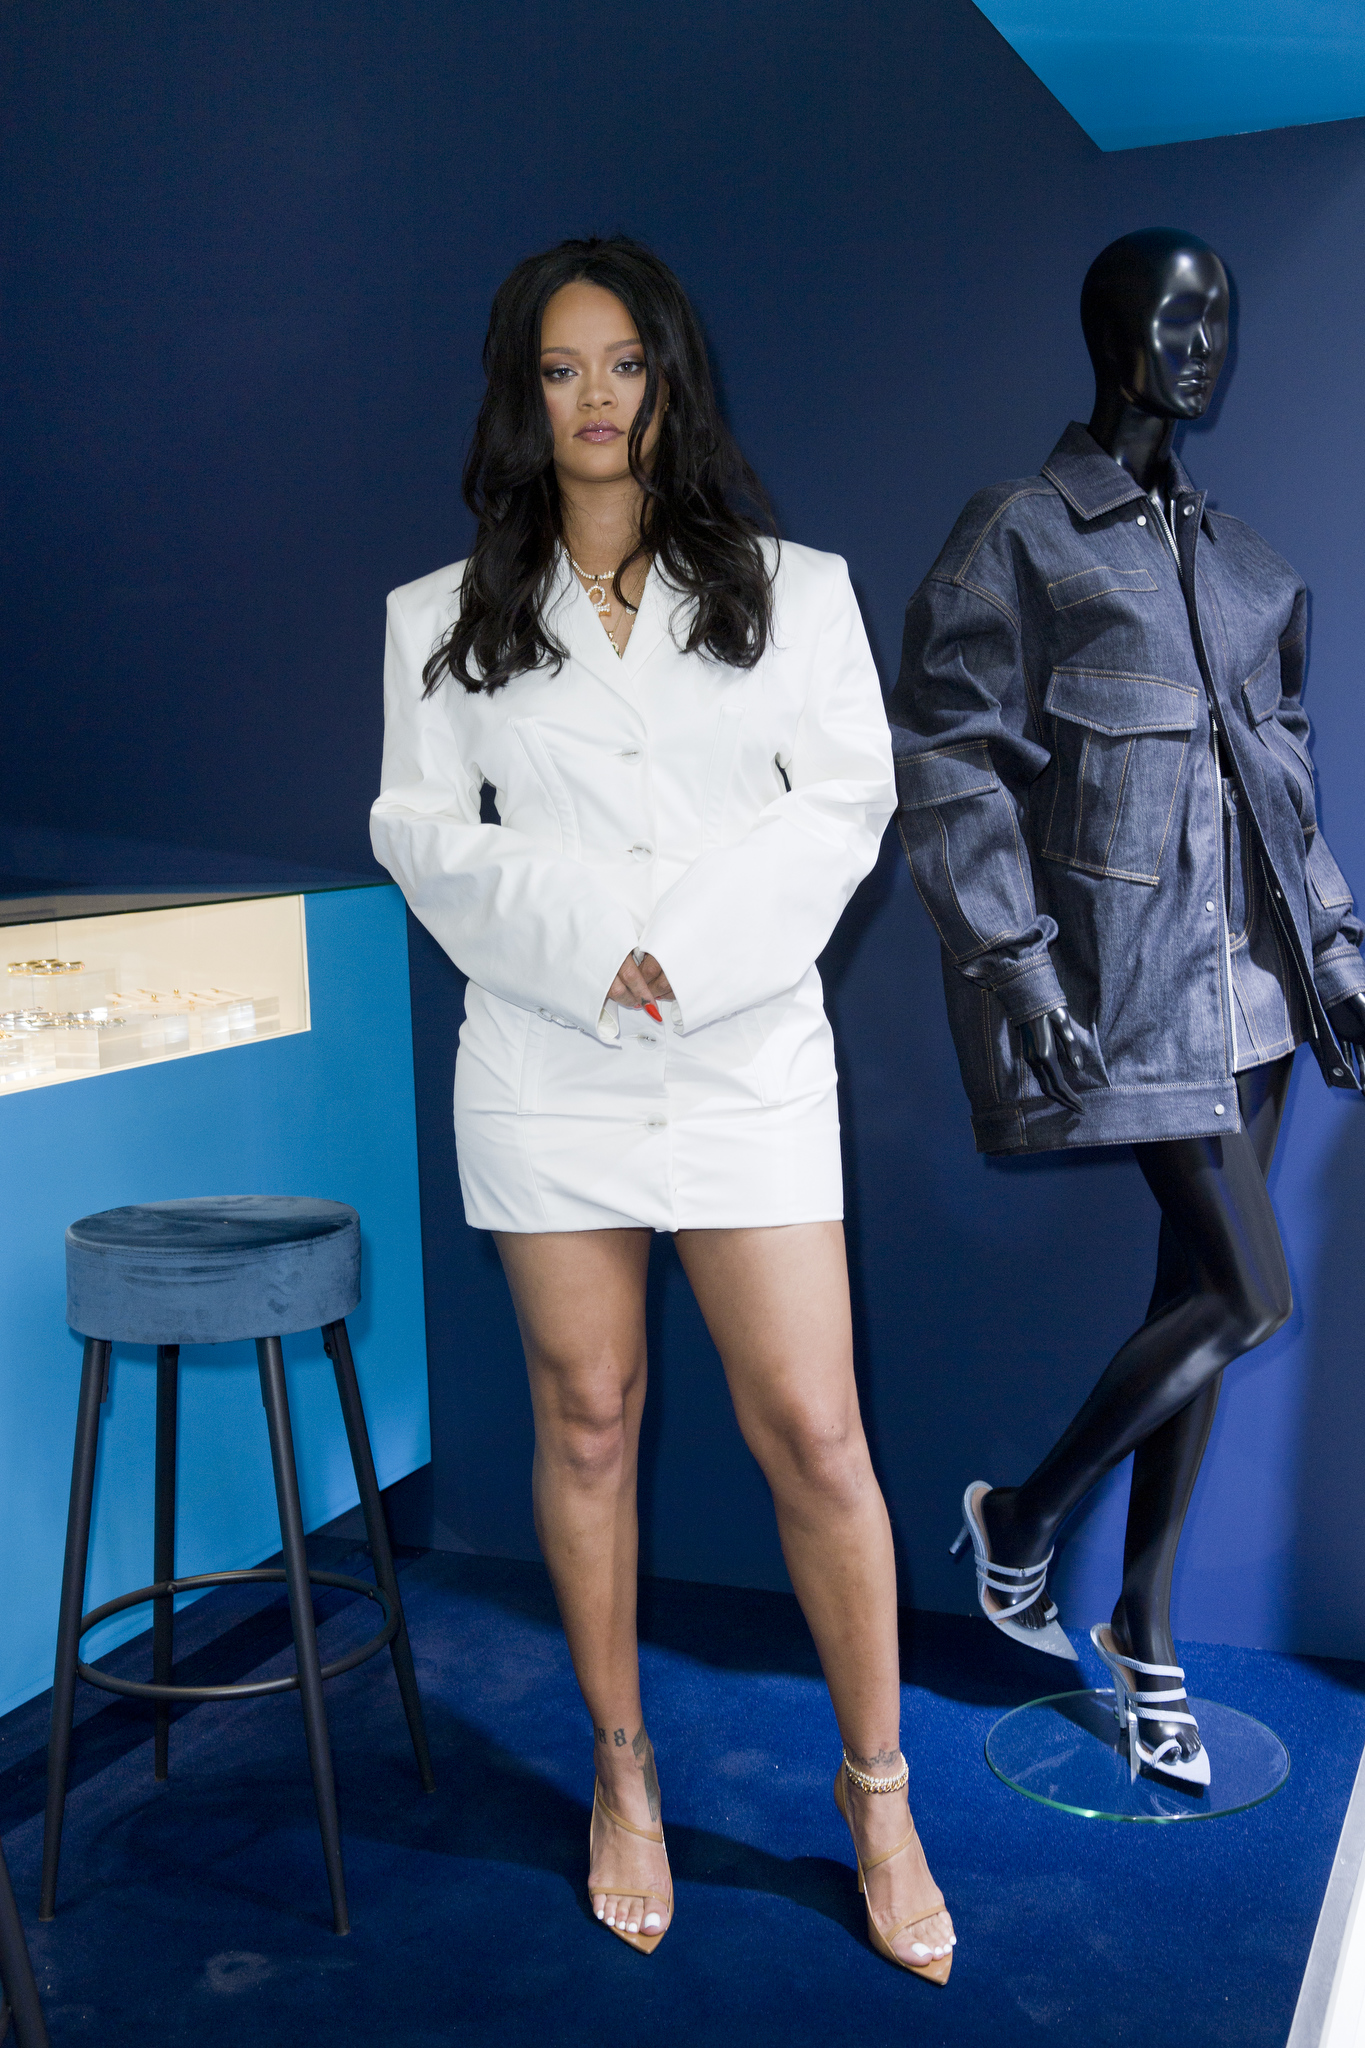 Rihanna at her first Fenty pop-up store in Paris, France.